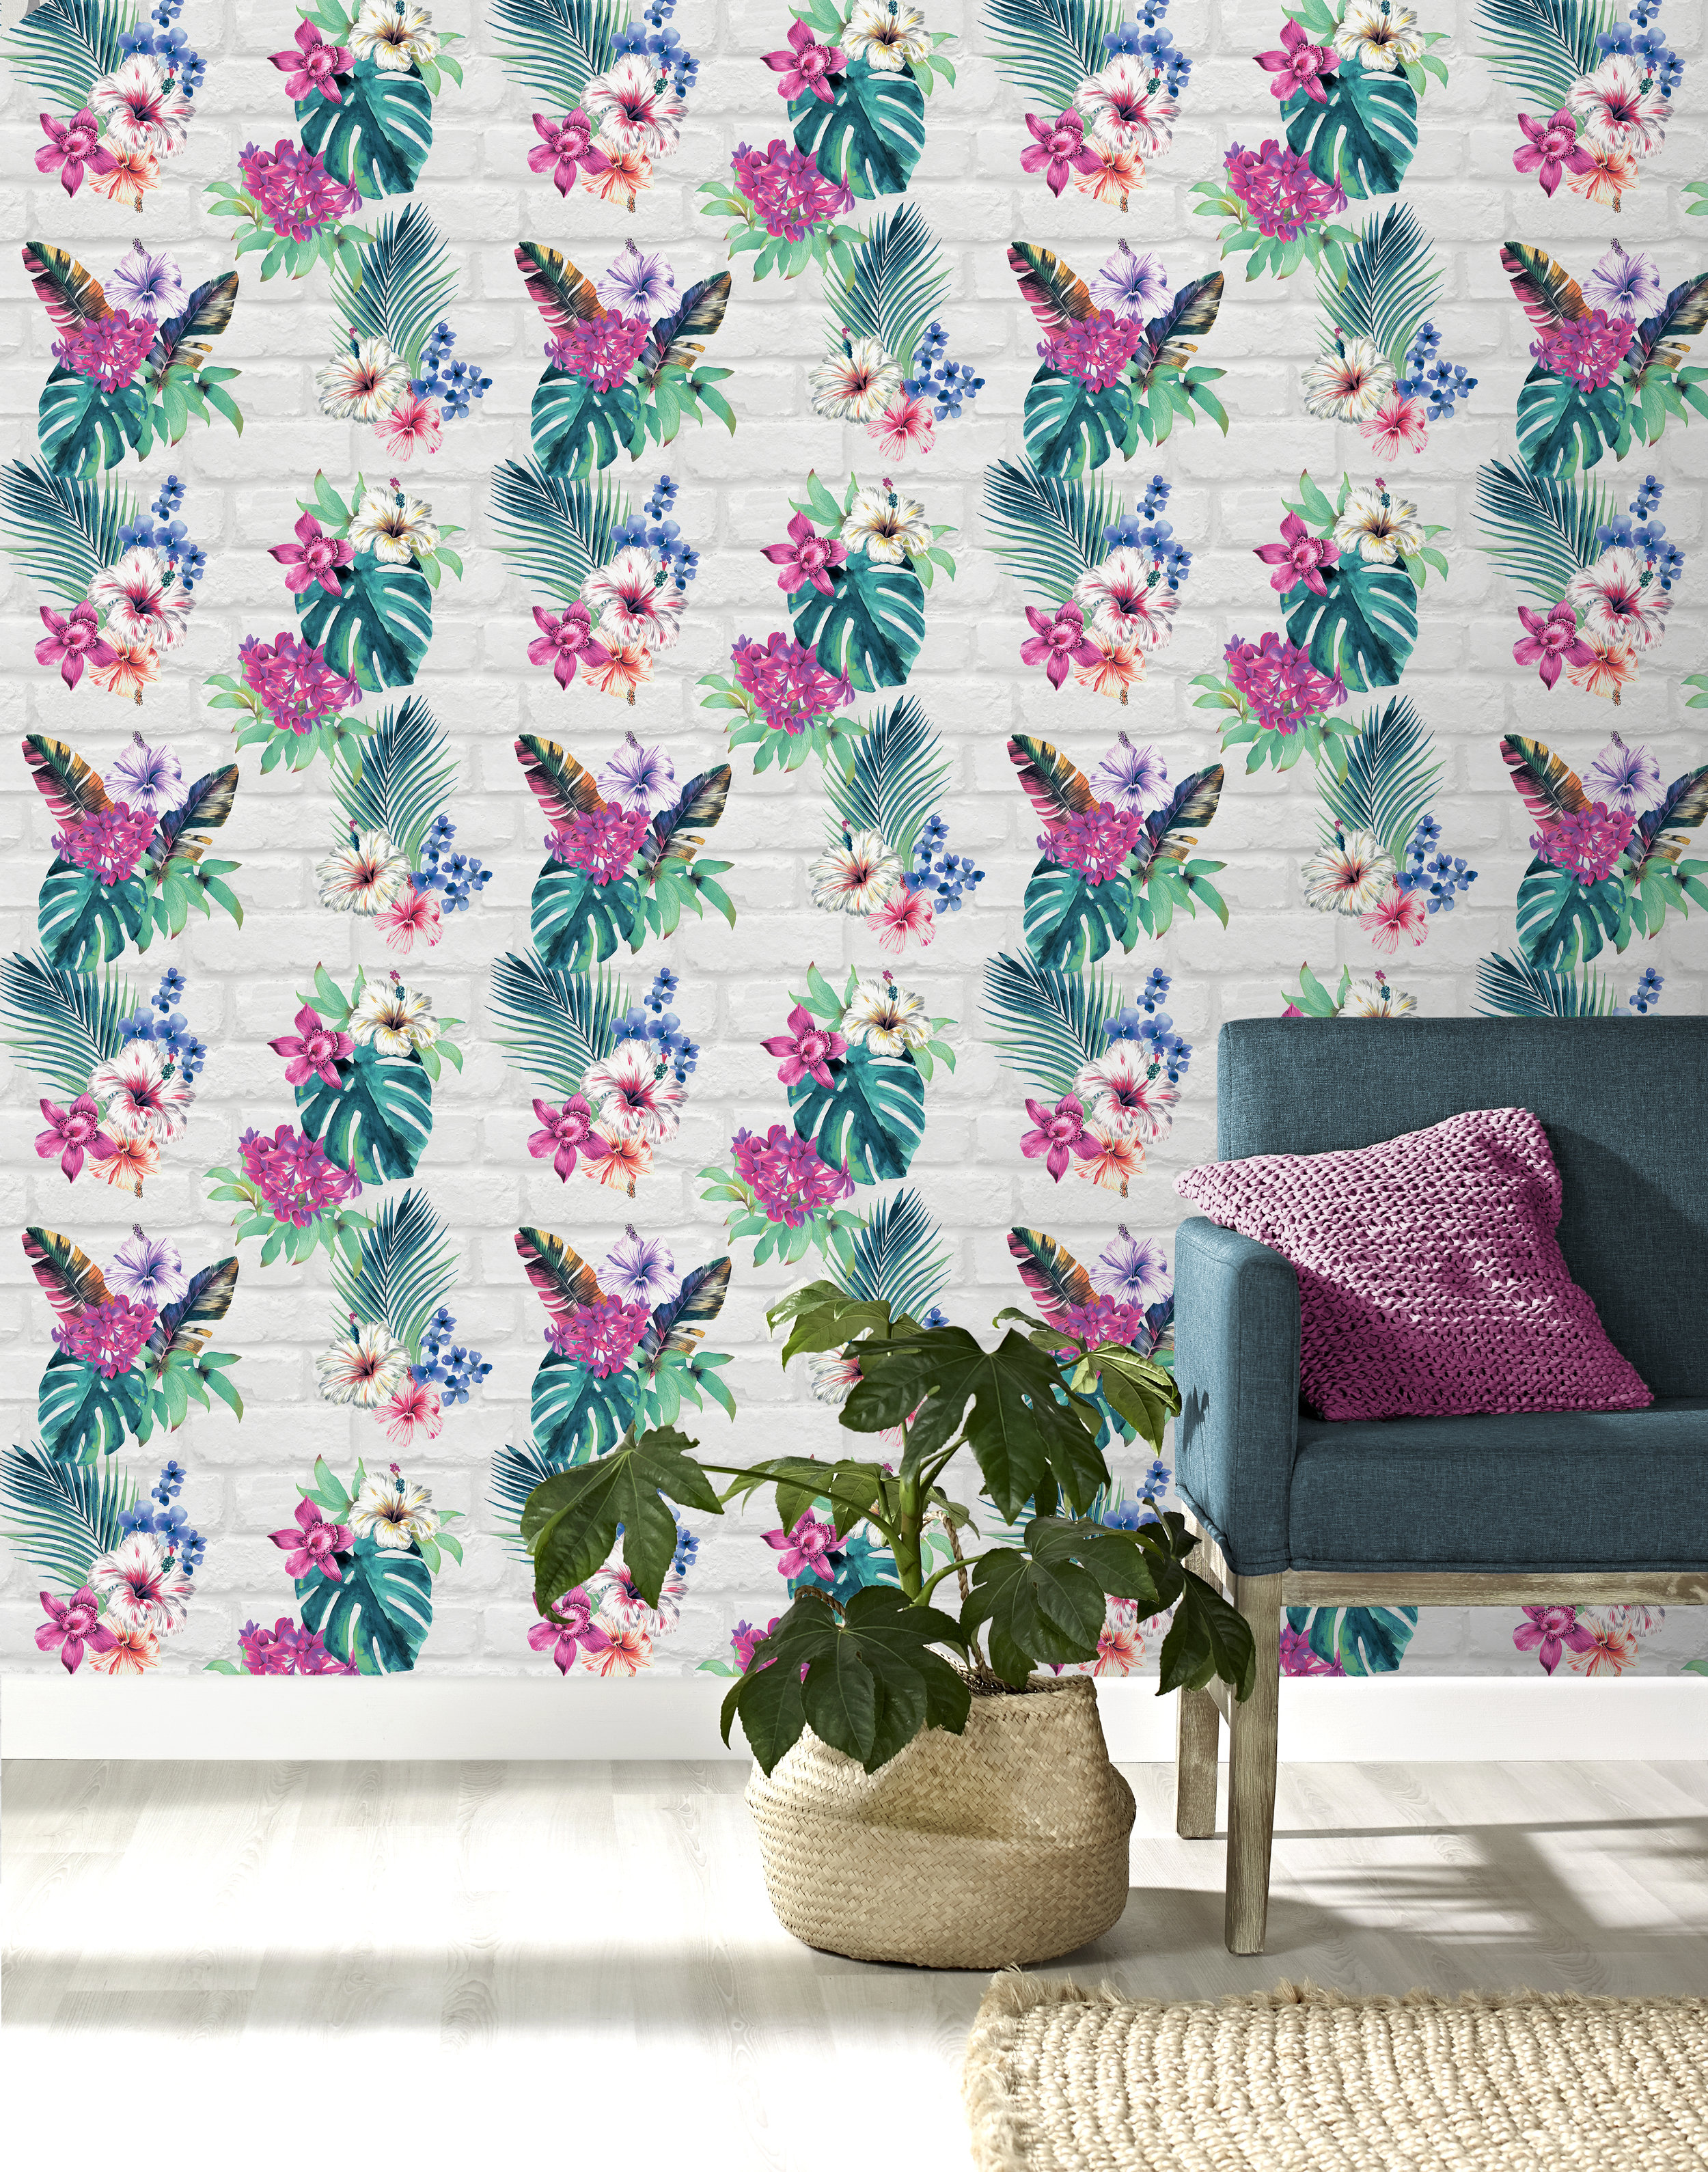 Accessorize Camden Brick Floral Wallpaper - Light Grey Multi copy.jpg